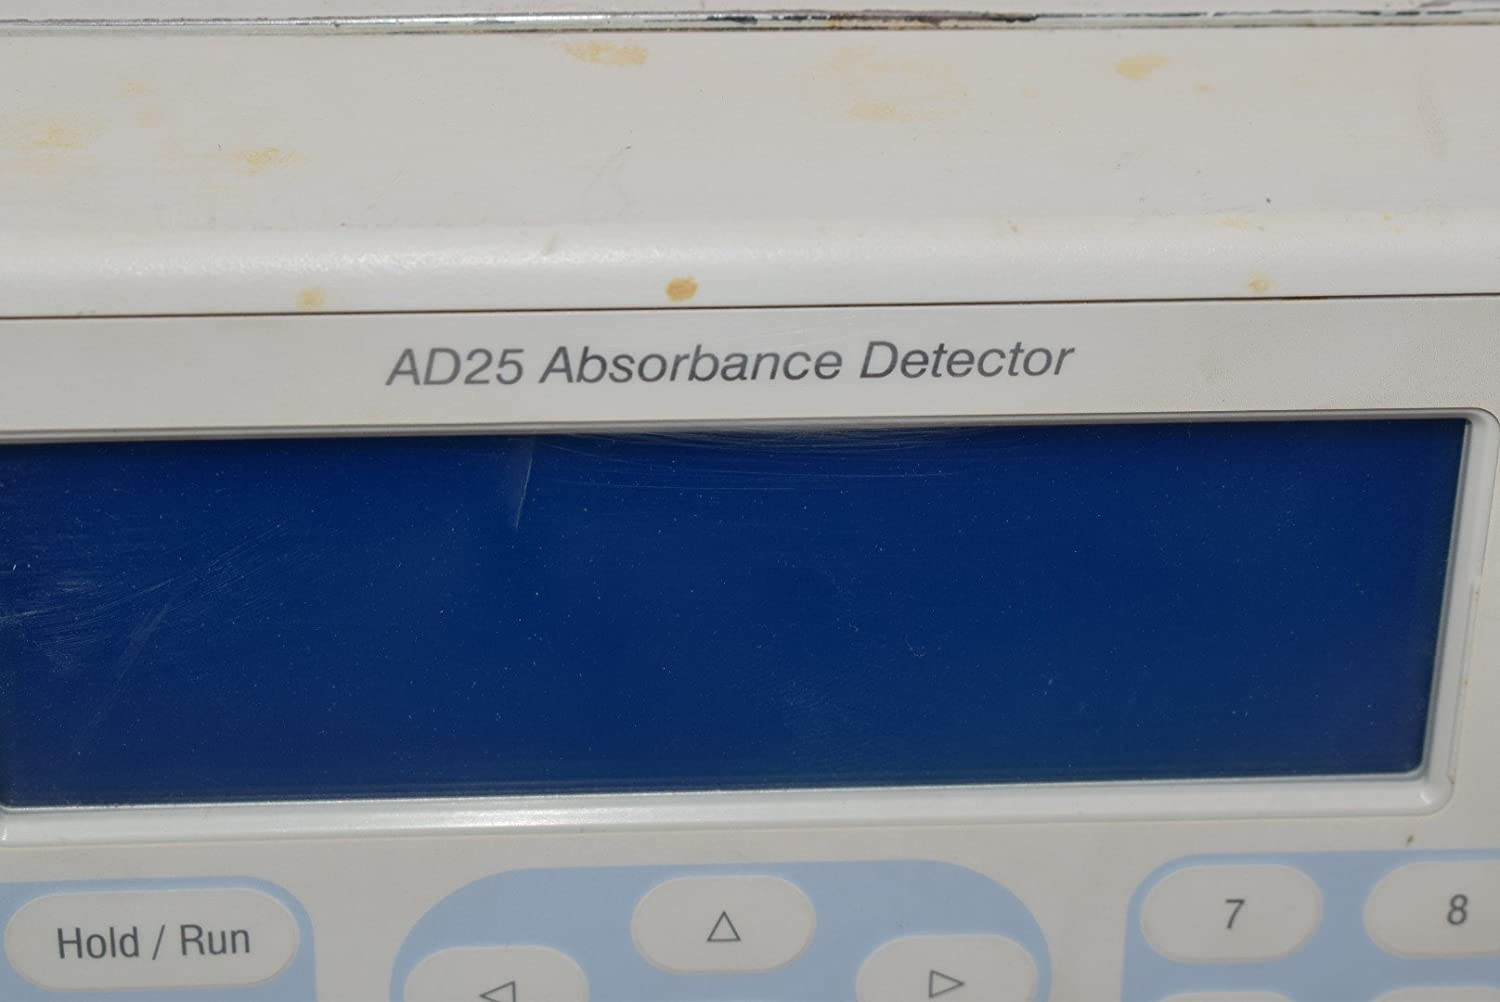 Dionex AD25 Dual Beam Absorbance Detector Chromatography System HPLC: Amazon.com: Industrial & Scientific